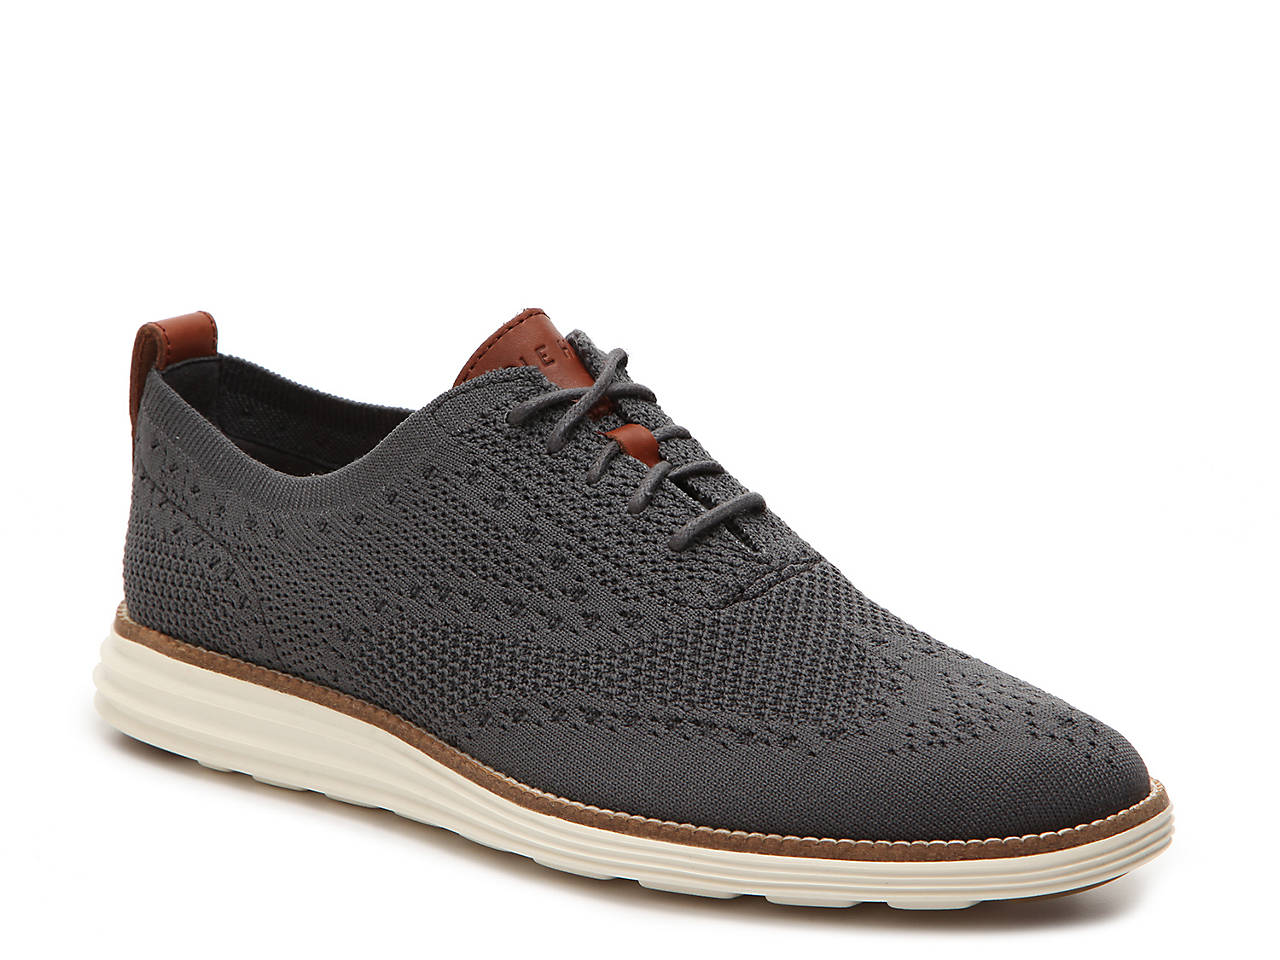 Cole Haan Original Grand Knit Wingtip Oxford Fashionable Cheap Online Choice For Sale Outlet Limited Edition URANs4e0k